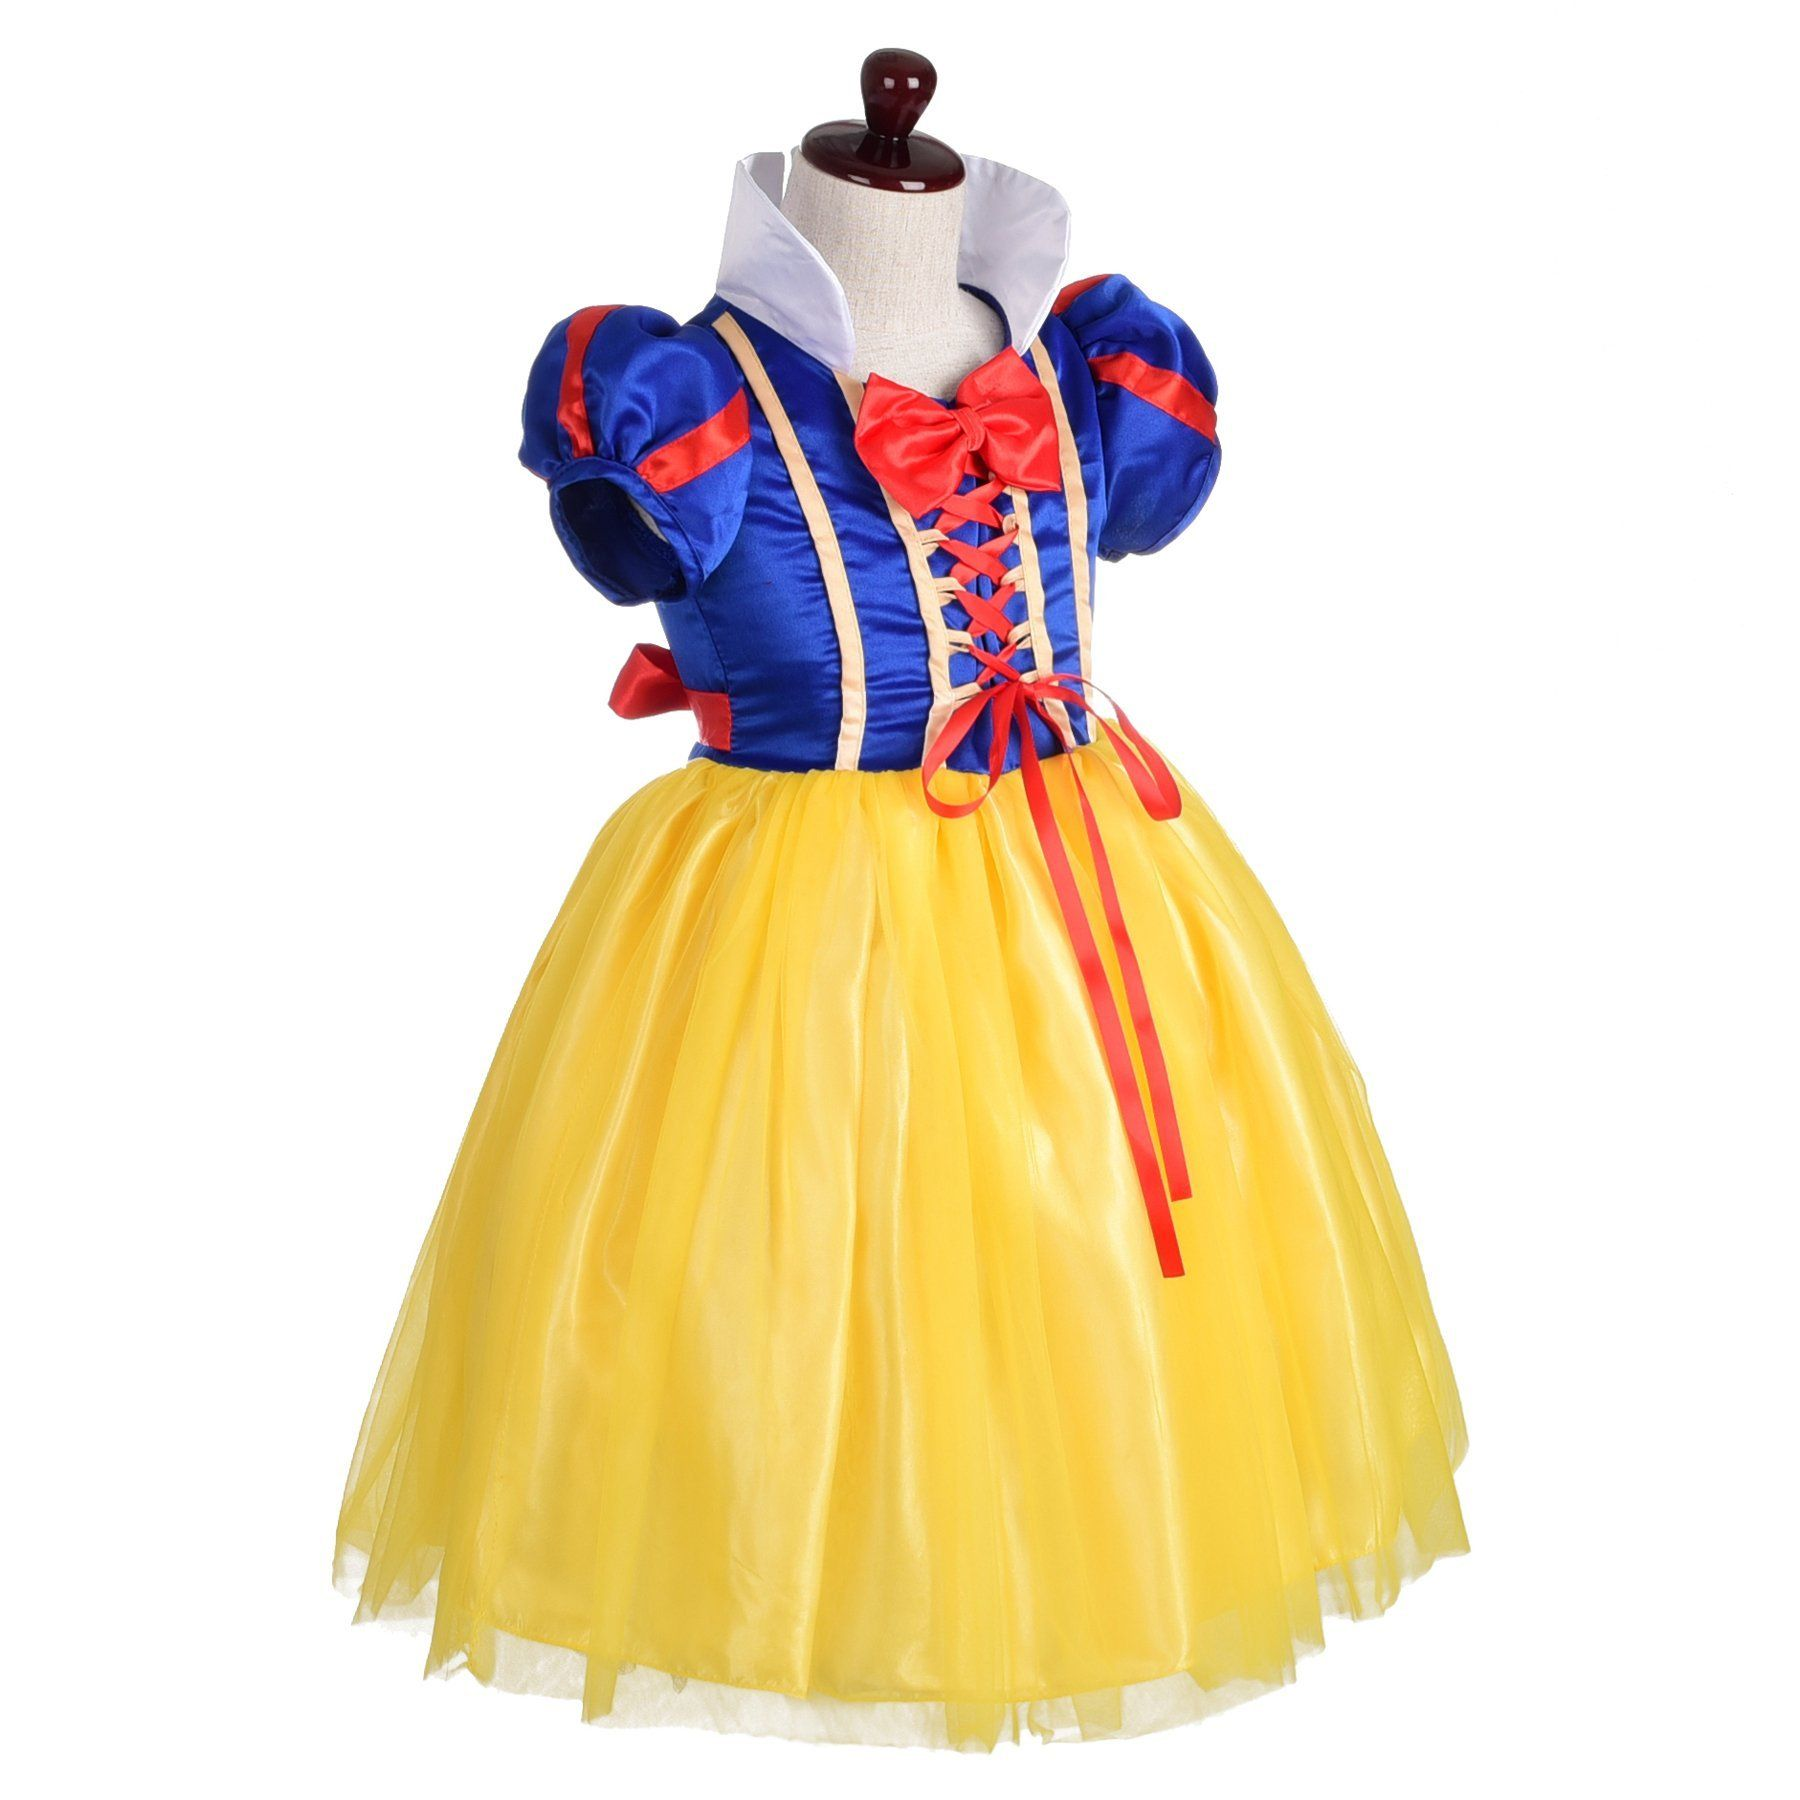 Kids Girls Snow White Princess Long Gown Fancy Party Dress Costume Christmas 3PC